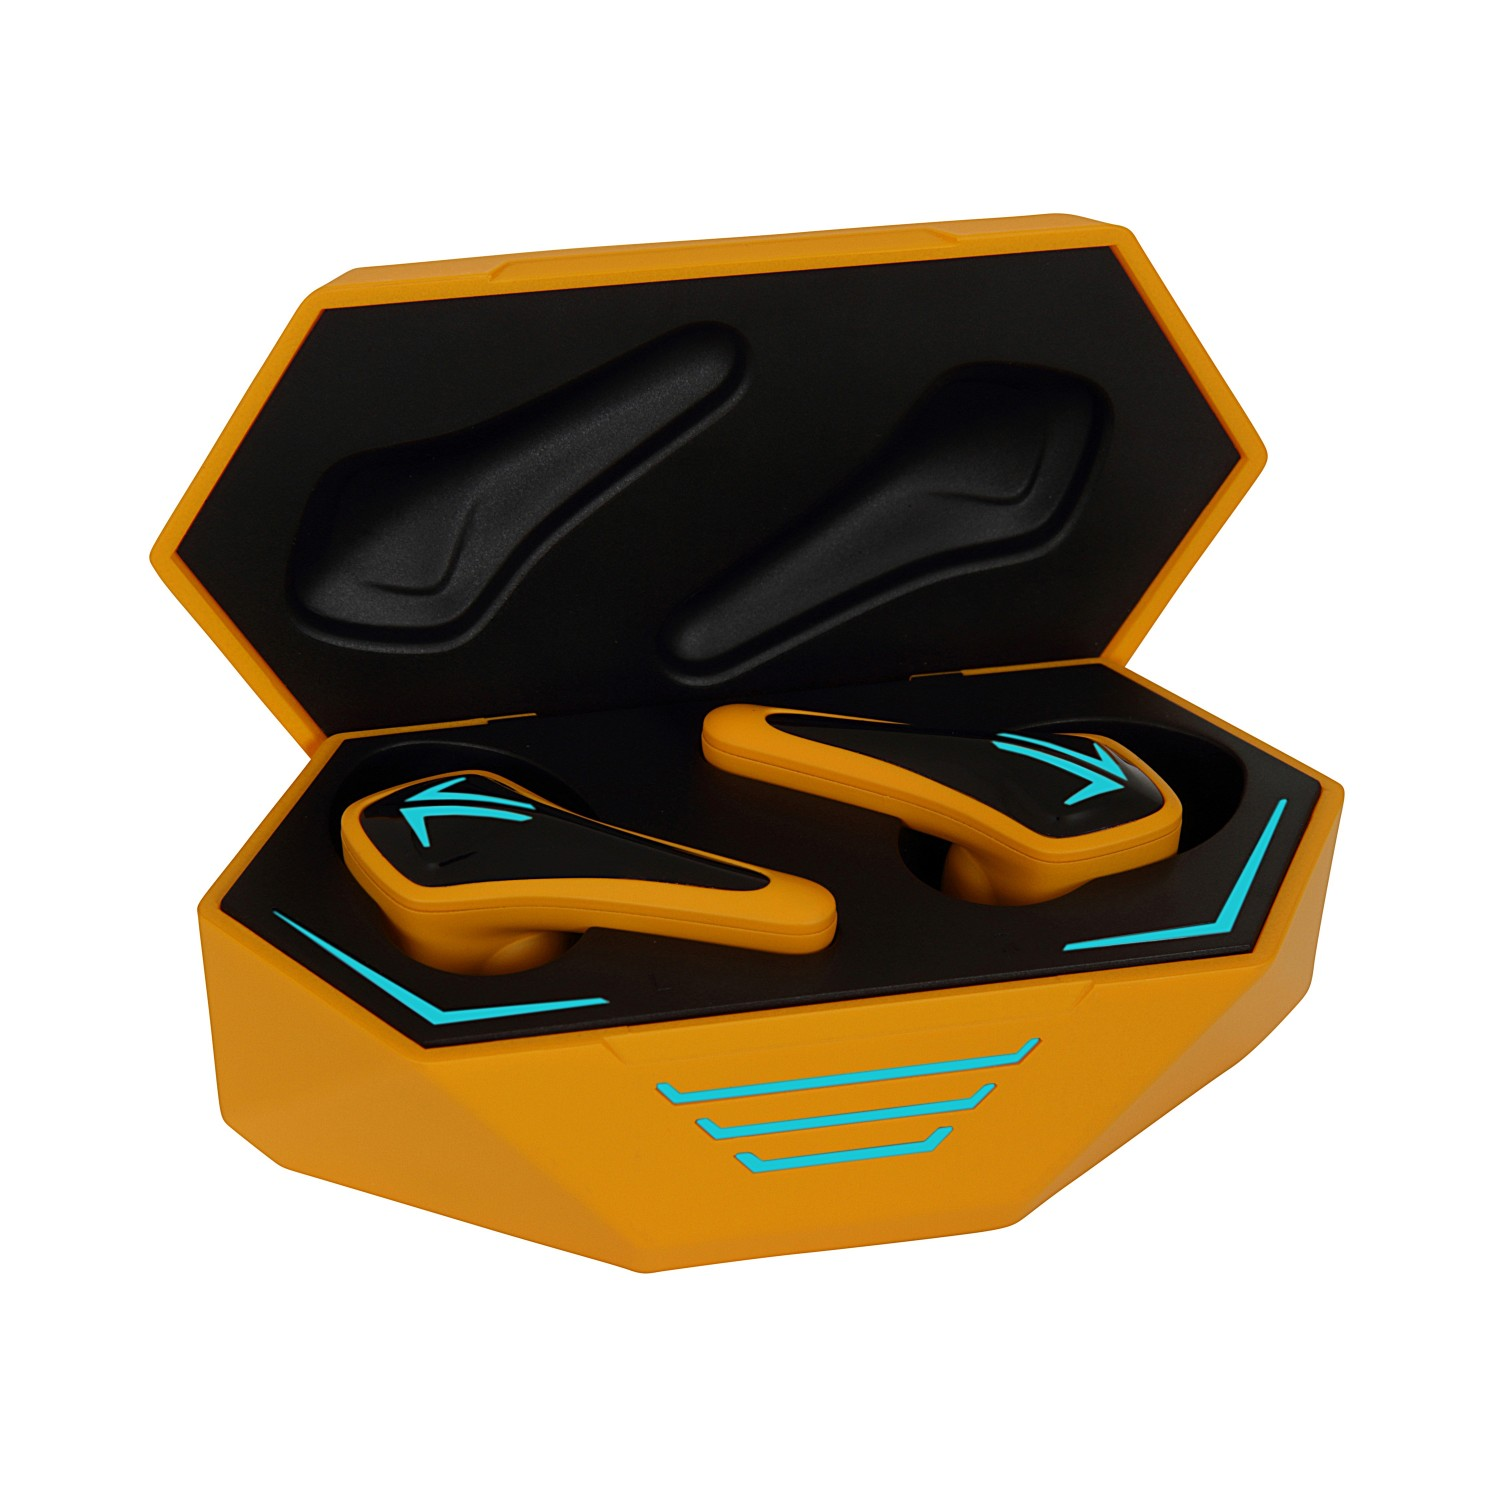 Spark Wireless Earphones - Wolves Edition - GoldThe latency of game mode is as low as 45ms, lossless surround sound quality;Dual microphone stereo call, calls clear and reliable;60mAh earbud, 500mAh charging case;Bluetooth 5.0, compatible with iOS and Android;IPX5 waterproof, no fear of sweat and rain;